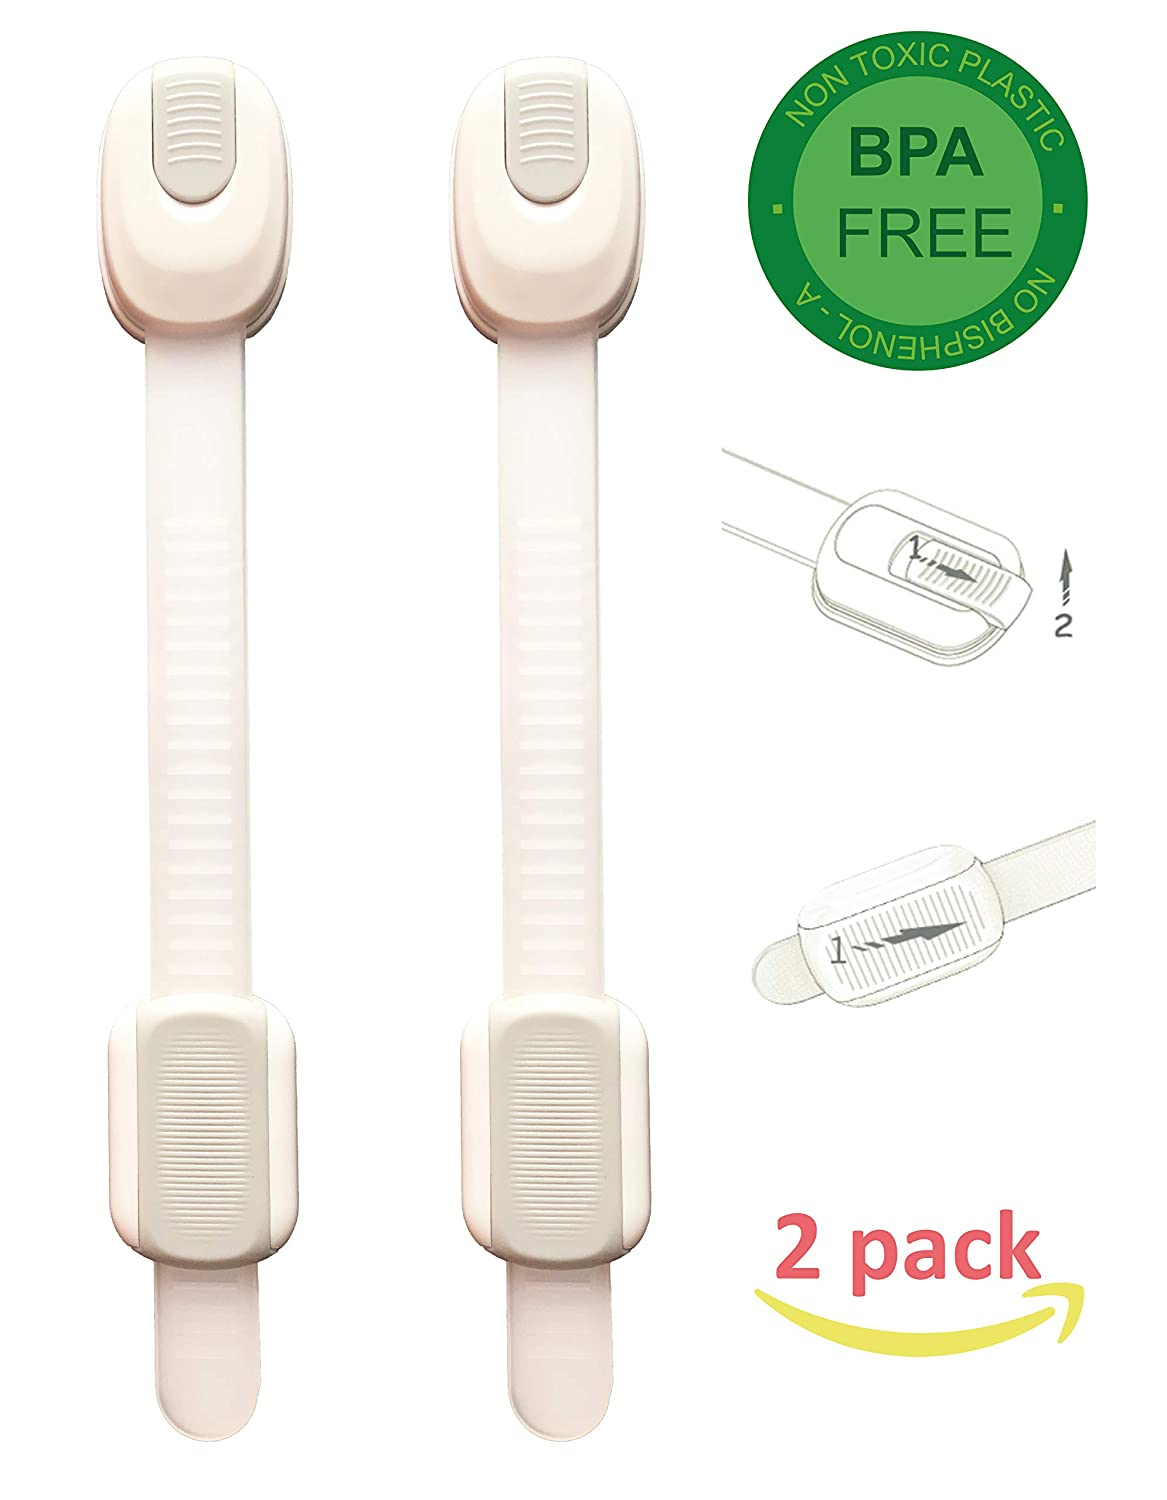 Adjustable Long Baby Safety Locks | Toddler, Kid, Child Safety Drawer Locks | Childproof Cabinet & Mini Fridge Lock | Toilet Locks for Toddlers|No Tools|Safety Strap and Latch System (2 Pack)